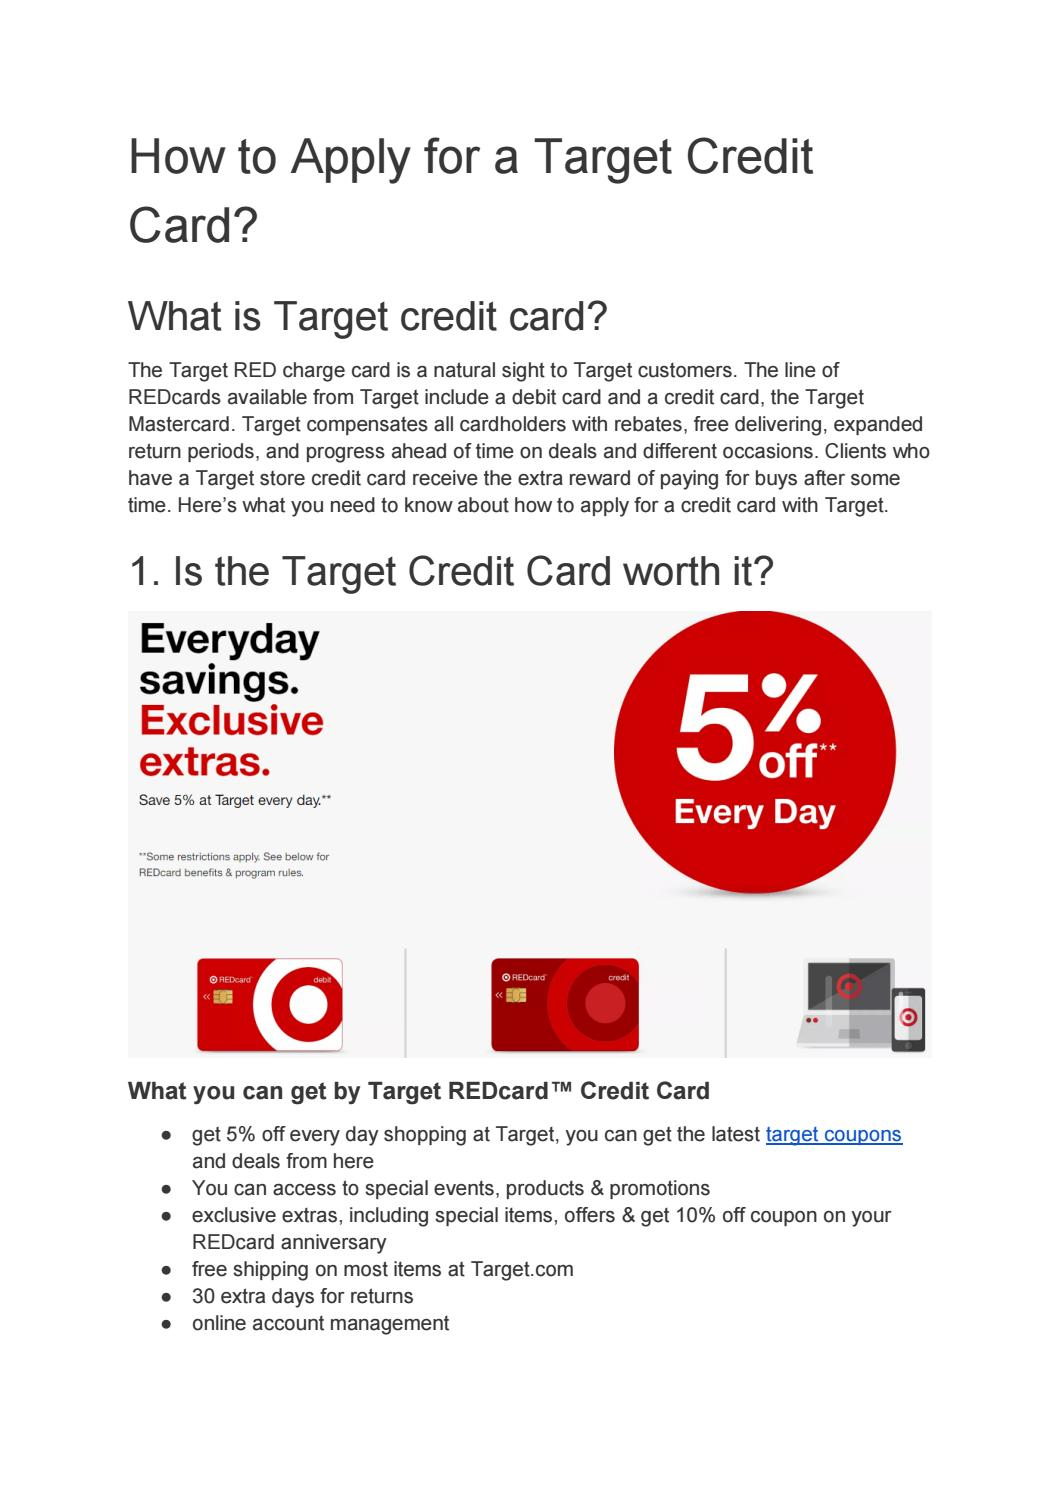 How I Successfuly Organized My Very Own Apply For Target Credit Card | Apply For Target Credit Card